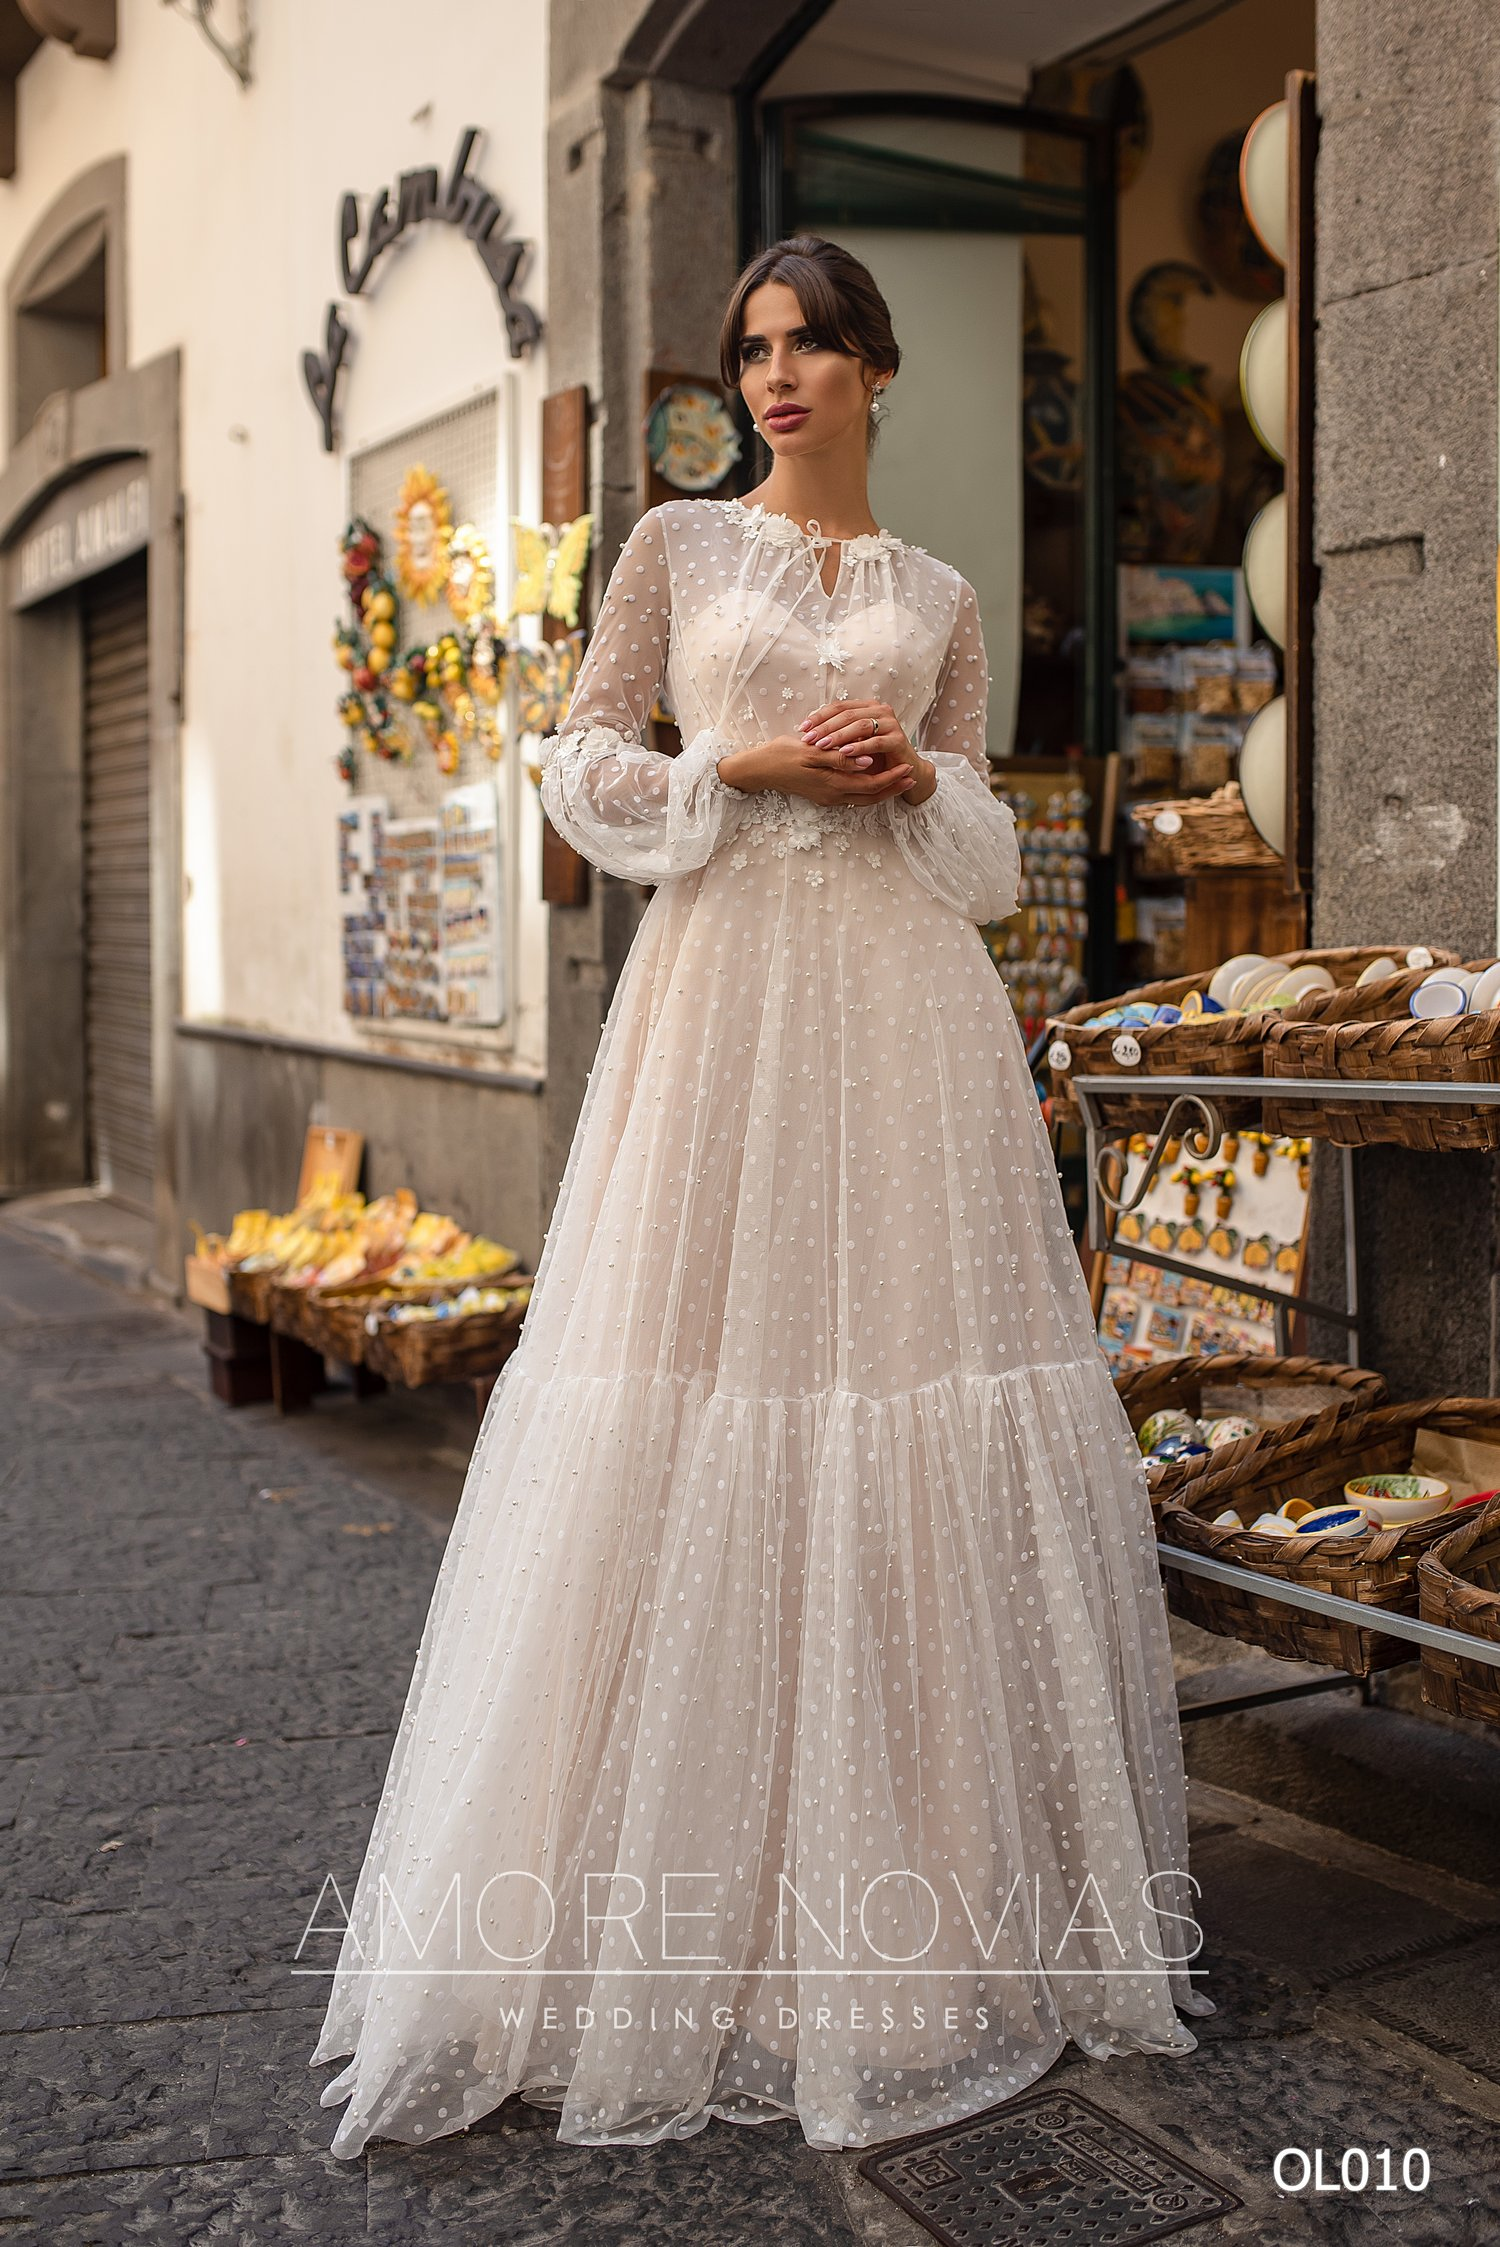 http://amore-novias.com/images/stories/virtuemart/product/OL010       (1).jpg